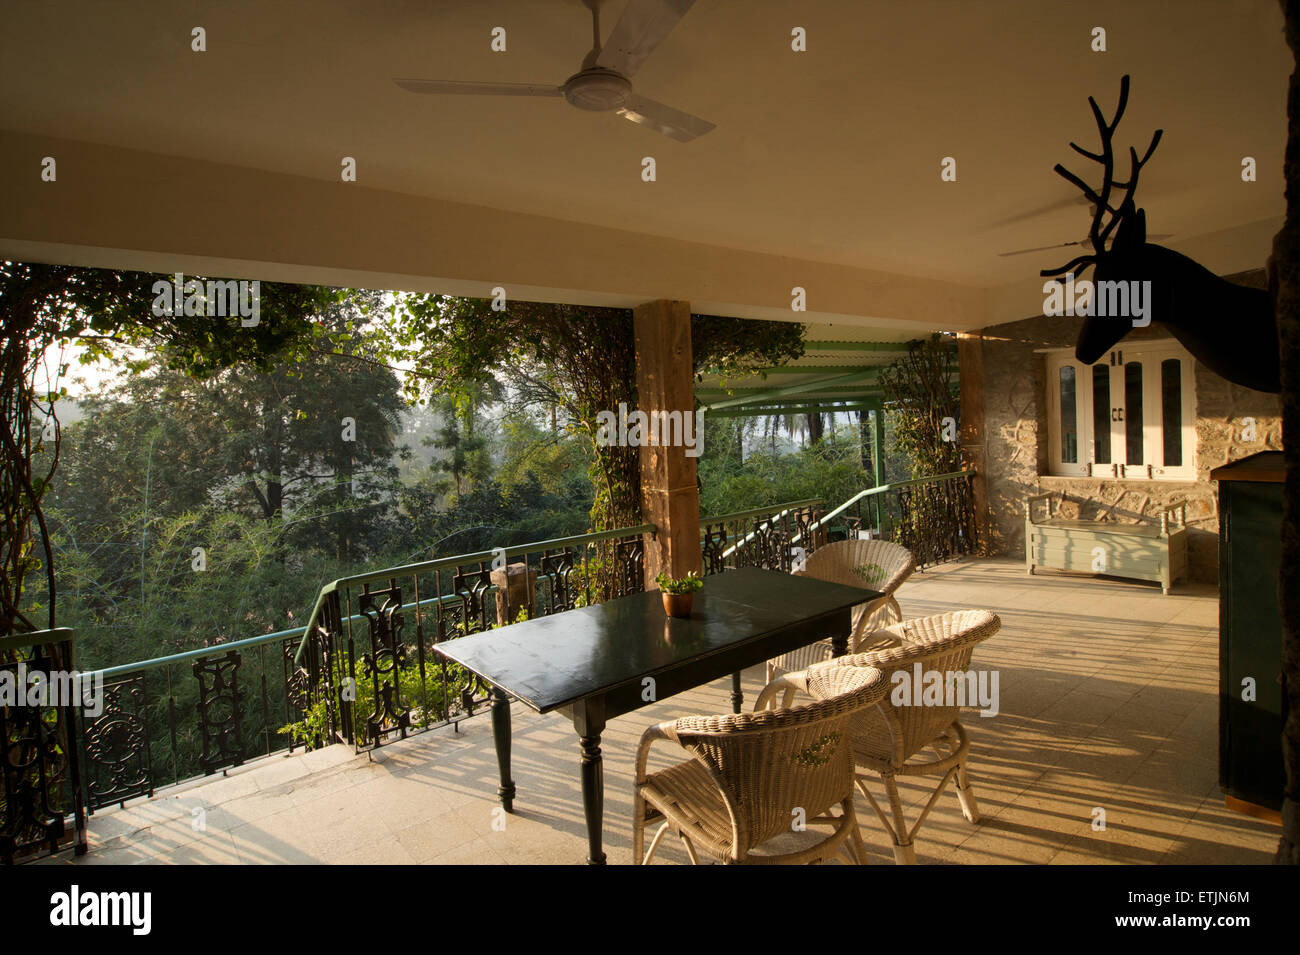 Terrace, Connaught House Heritage hotel, Mount Abu, Rajasthan, India - Stock Image